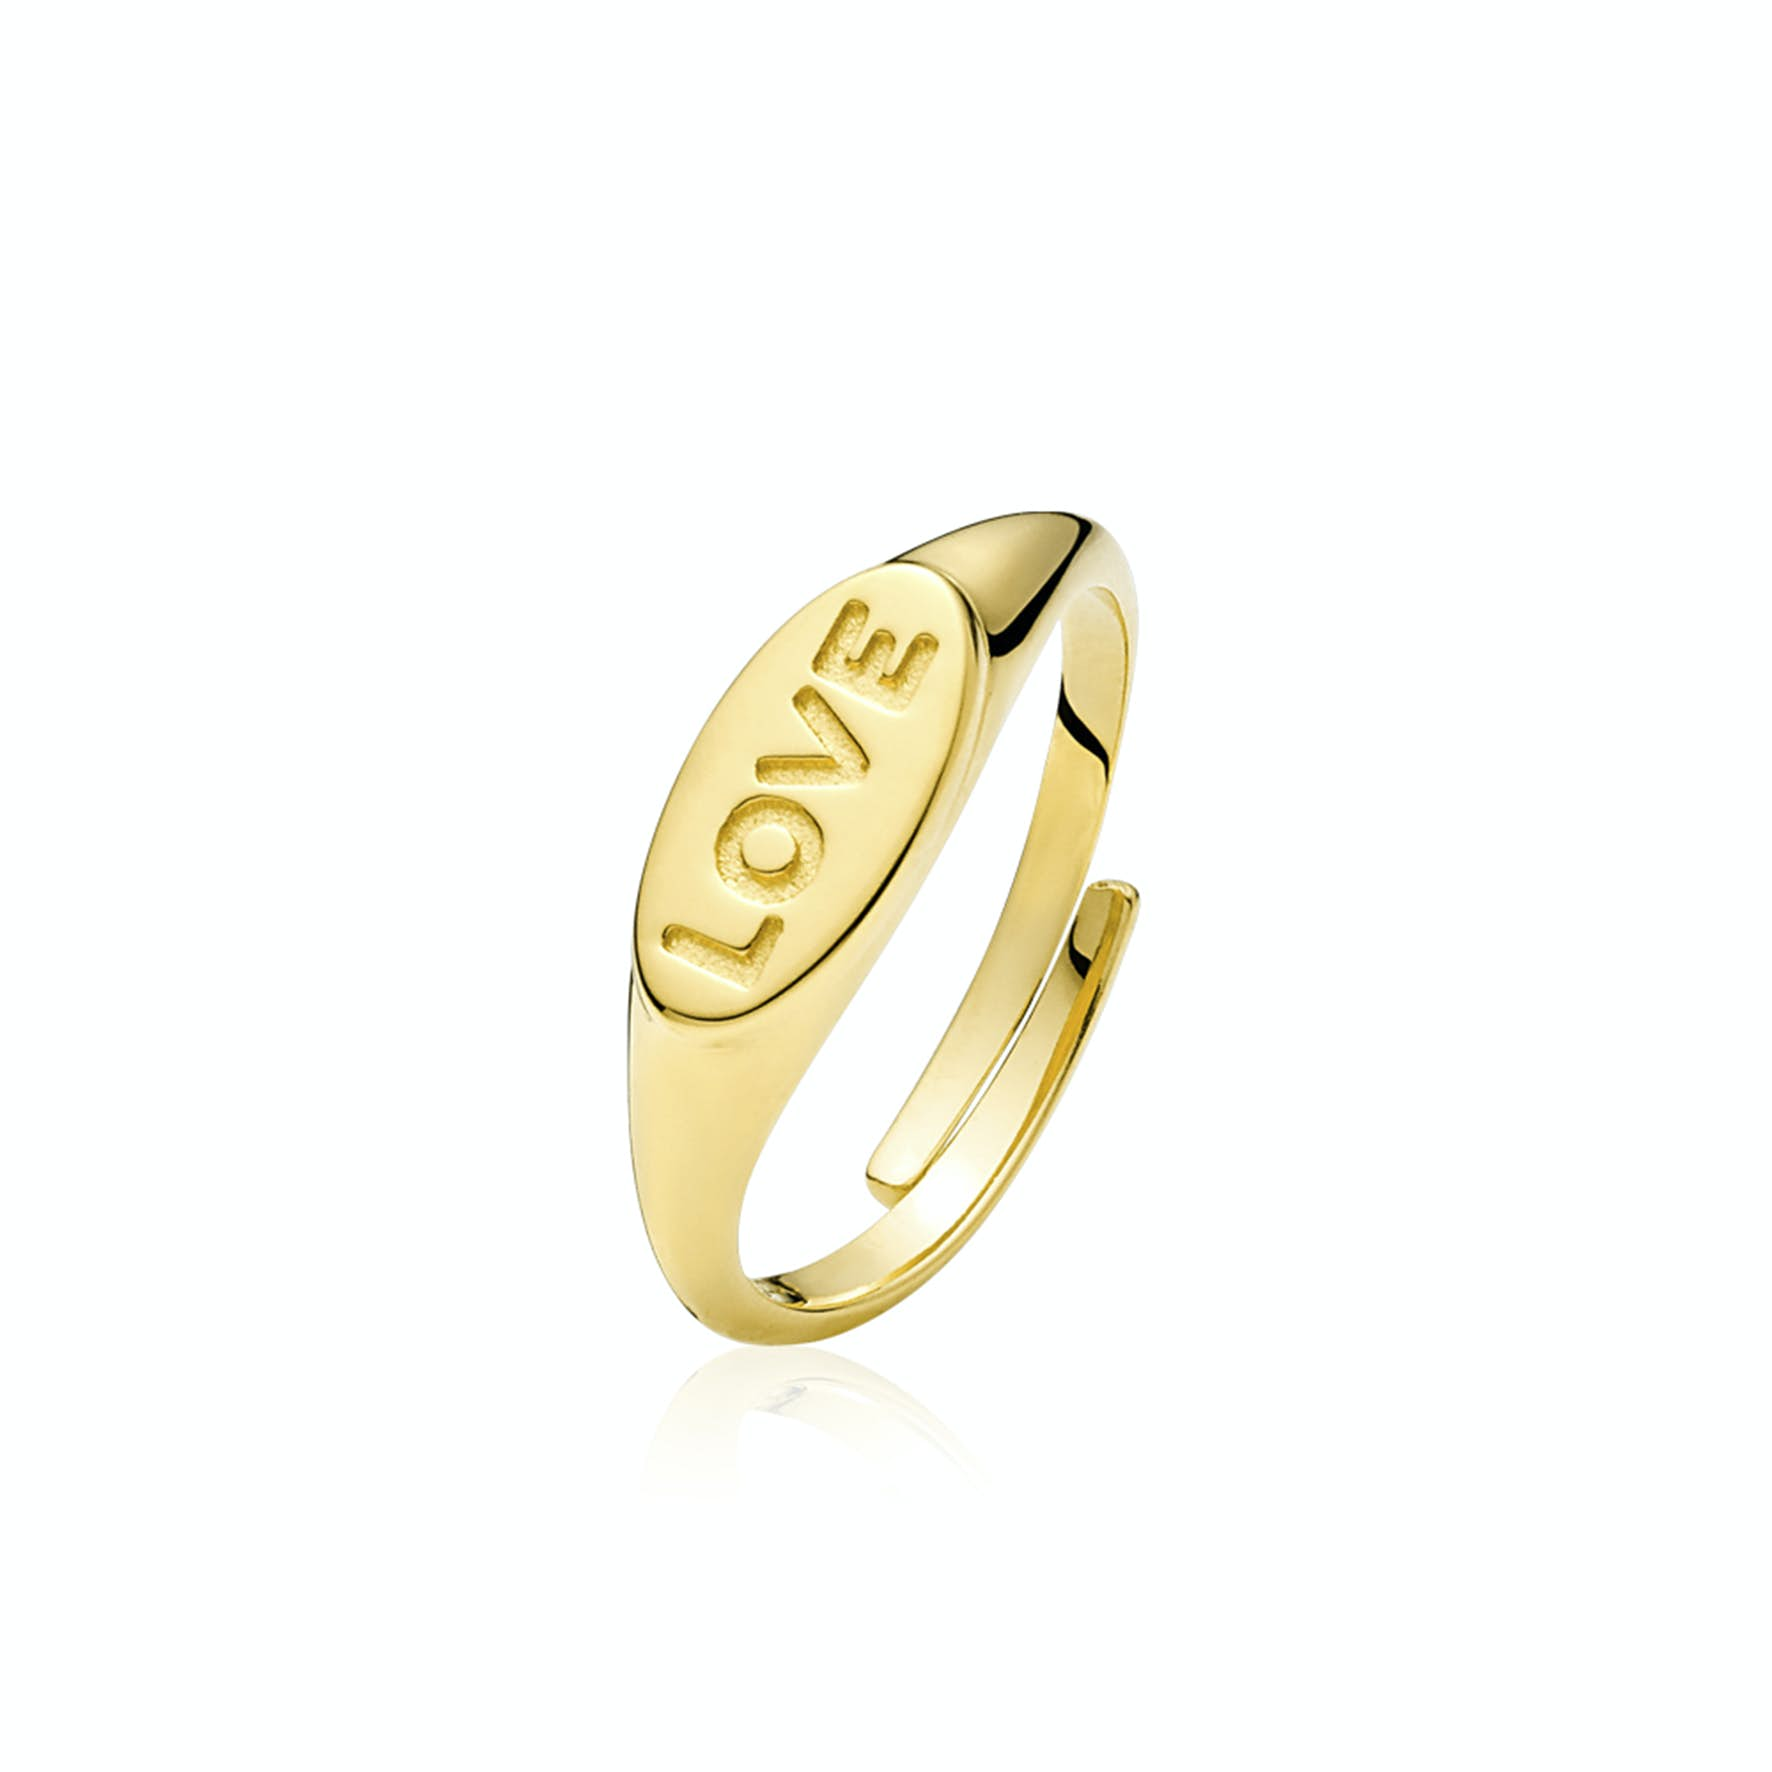 Fam Love Ring from Sistie in Goldplated-Silver Sterling 925